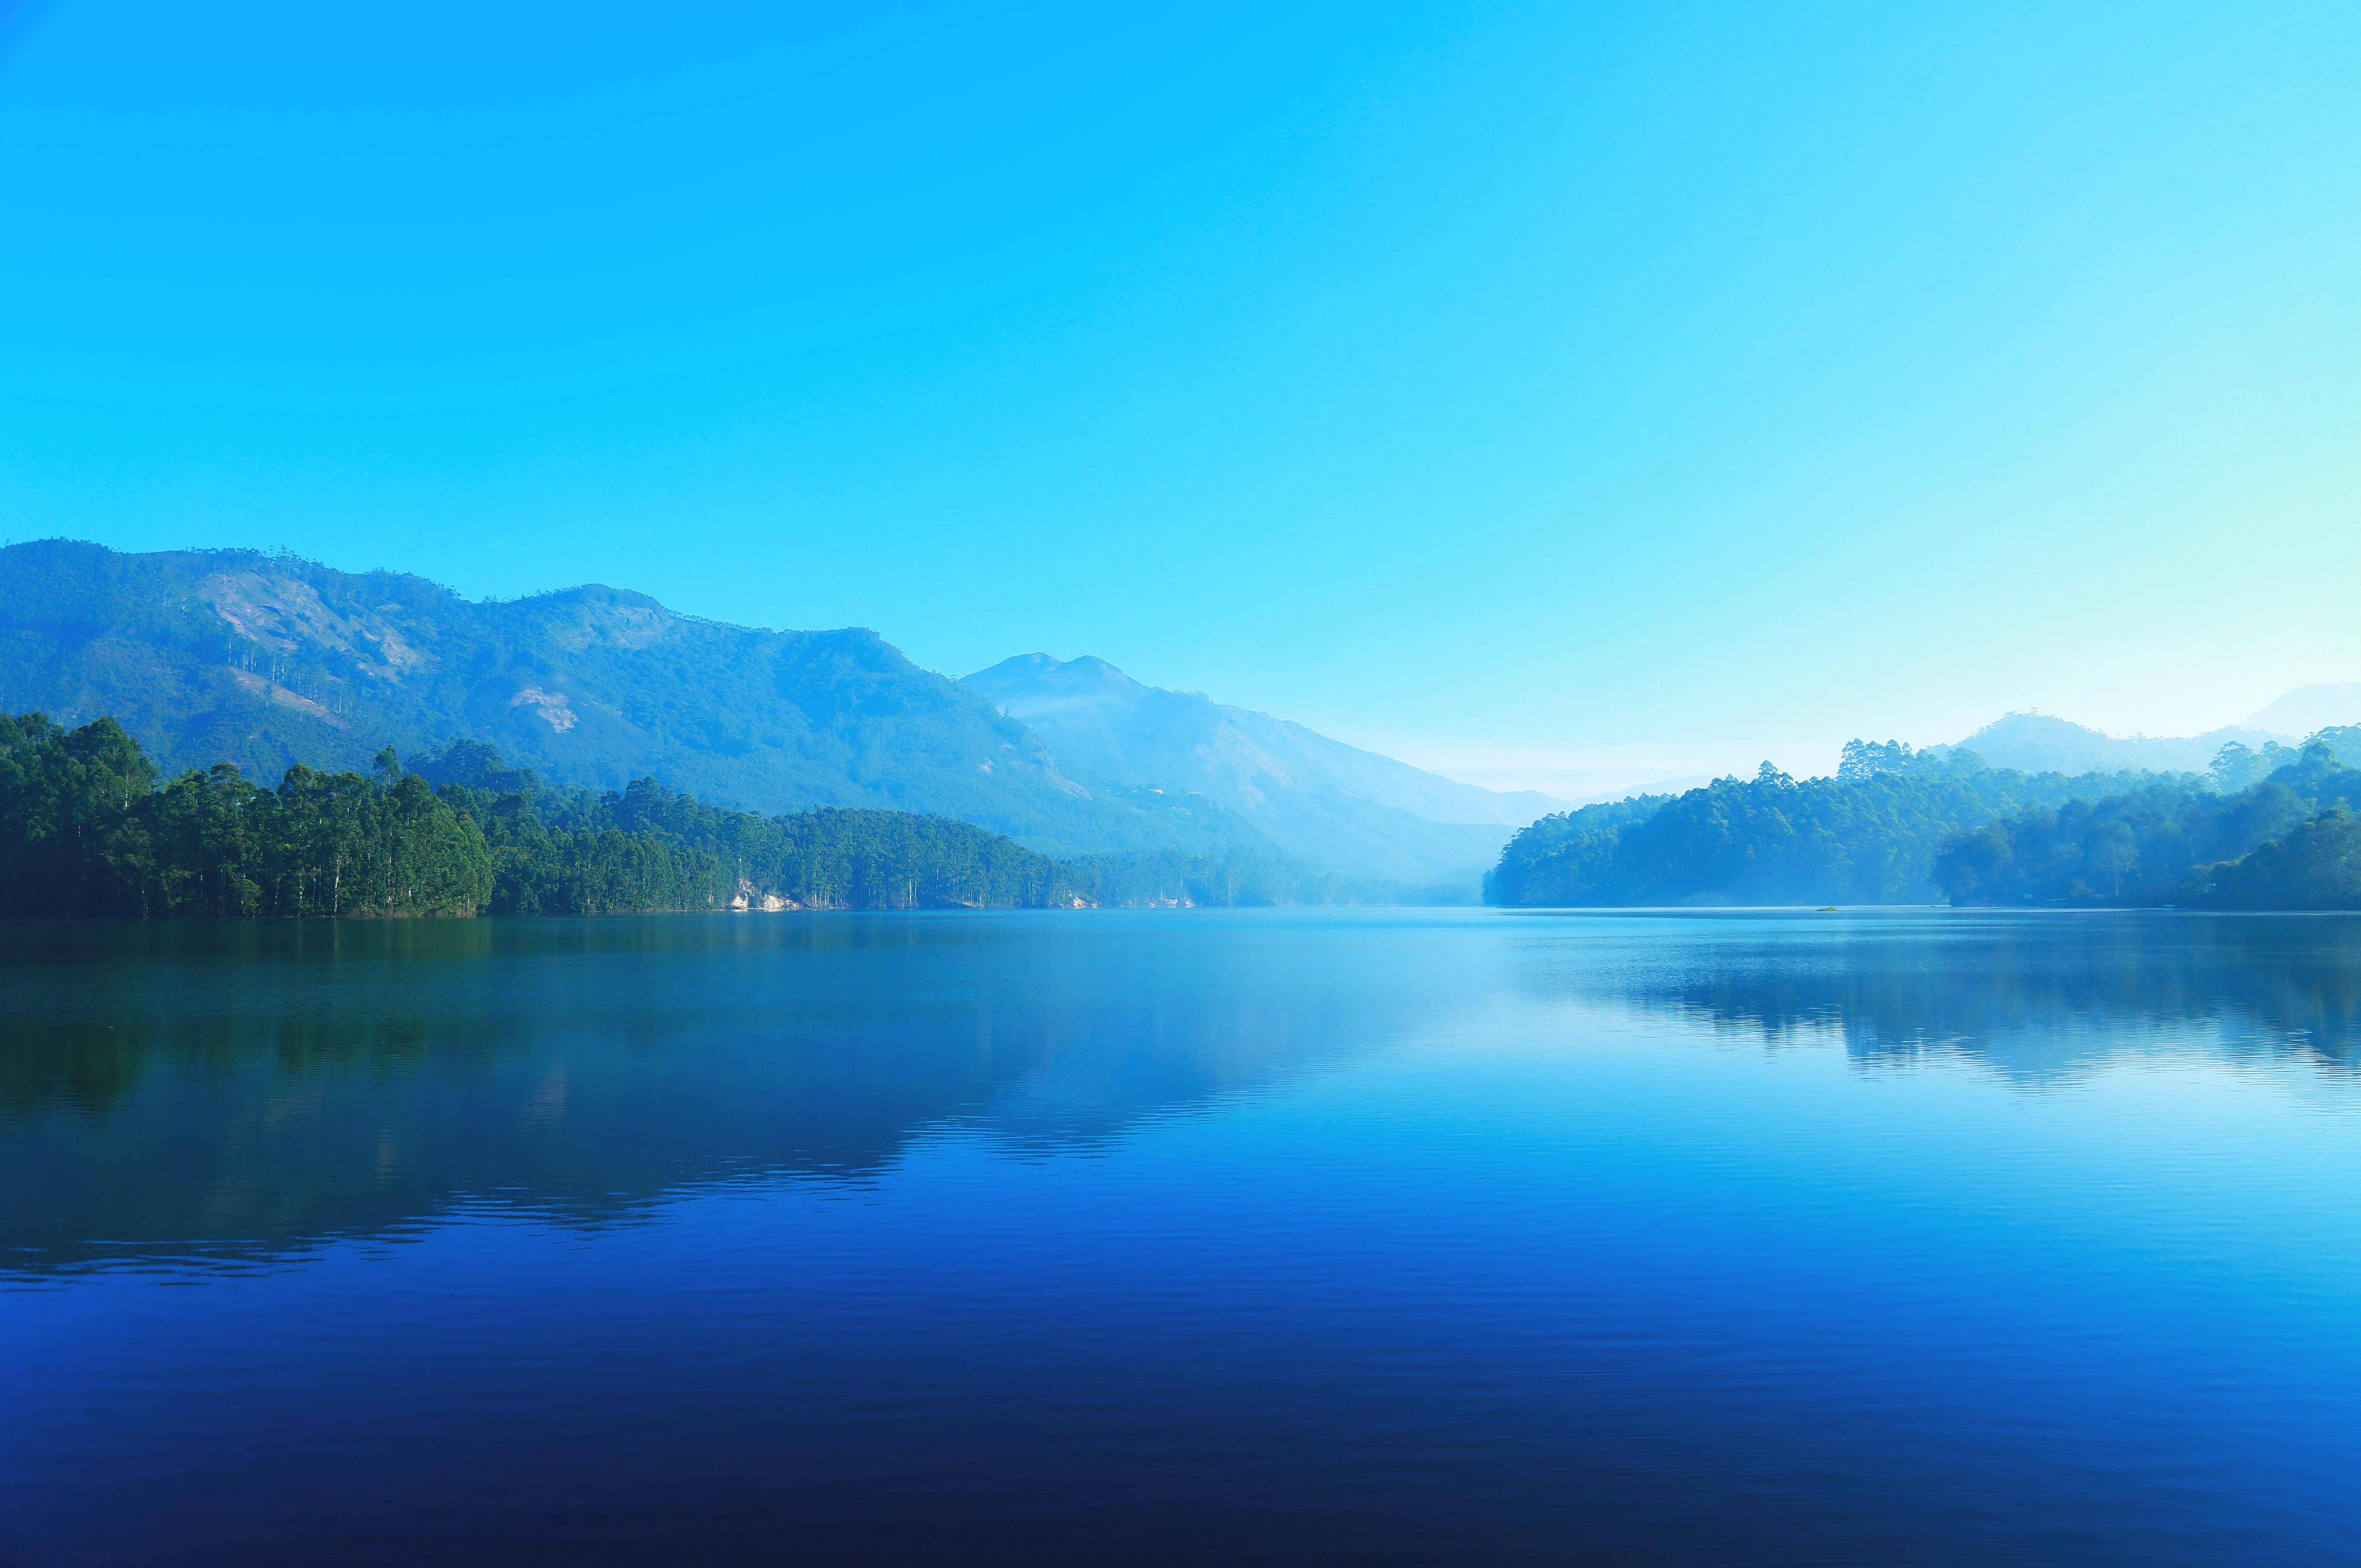 Free stock photo of sky, water, blue, mountain